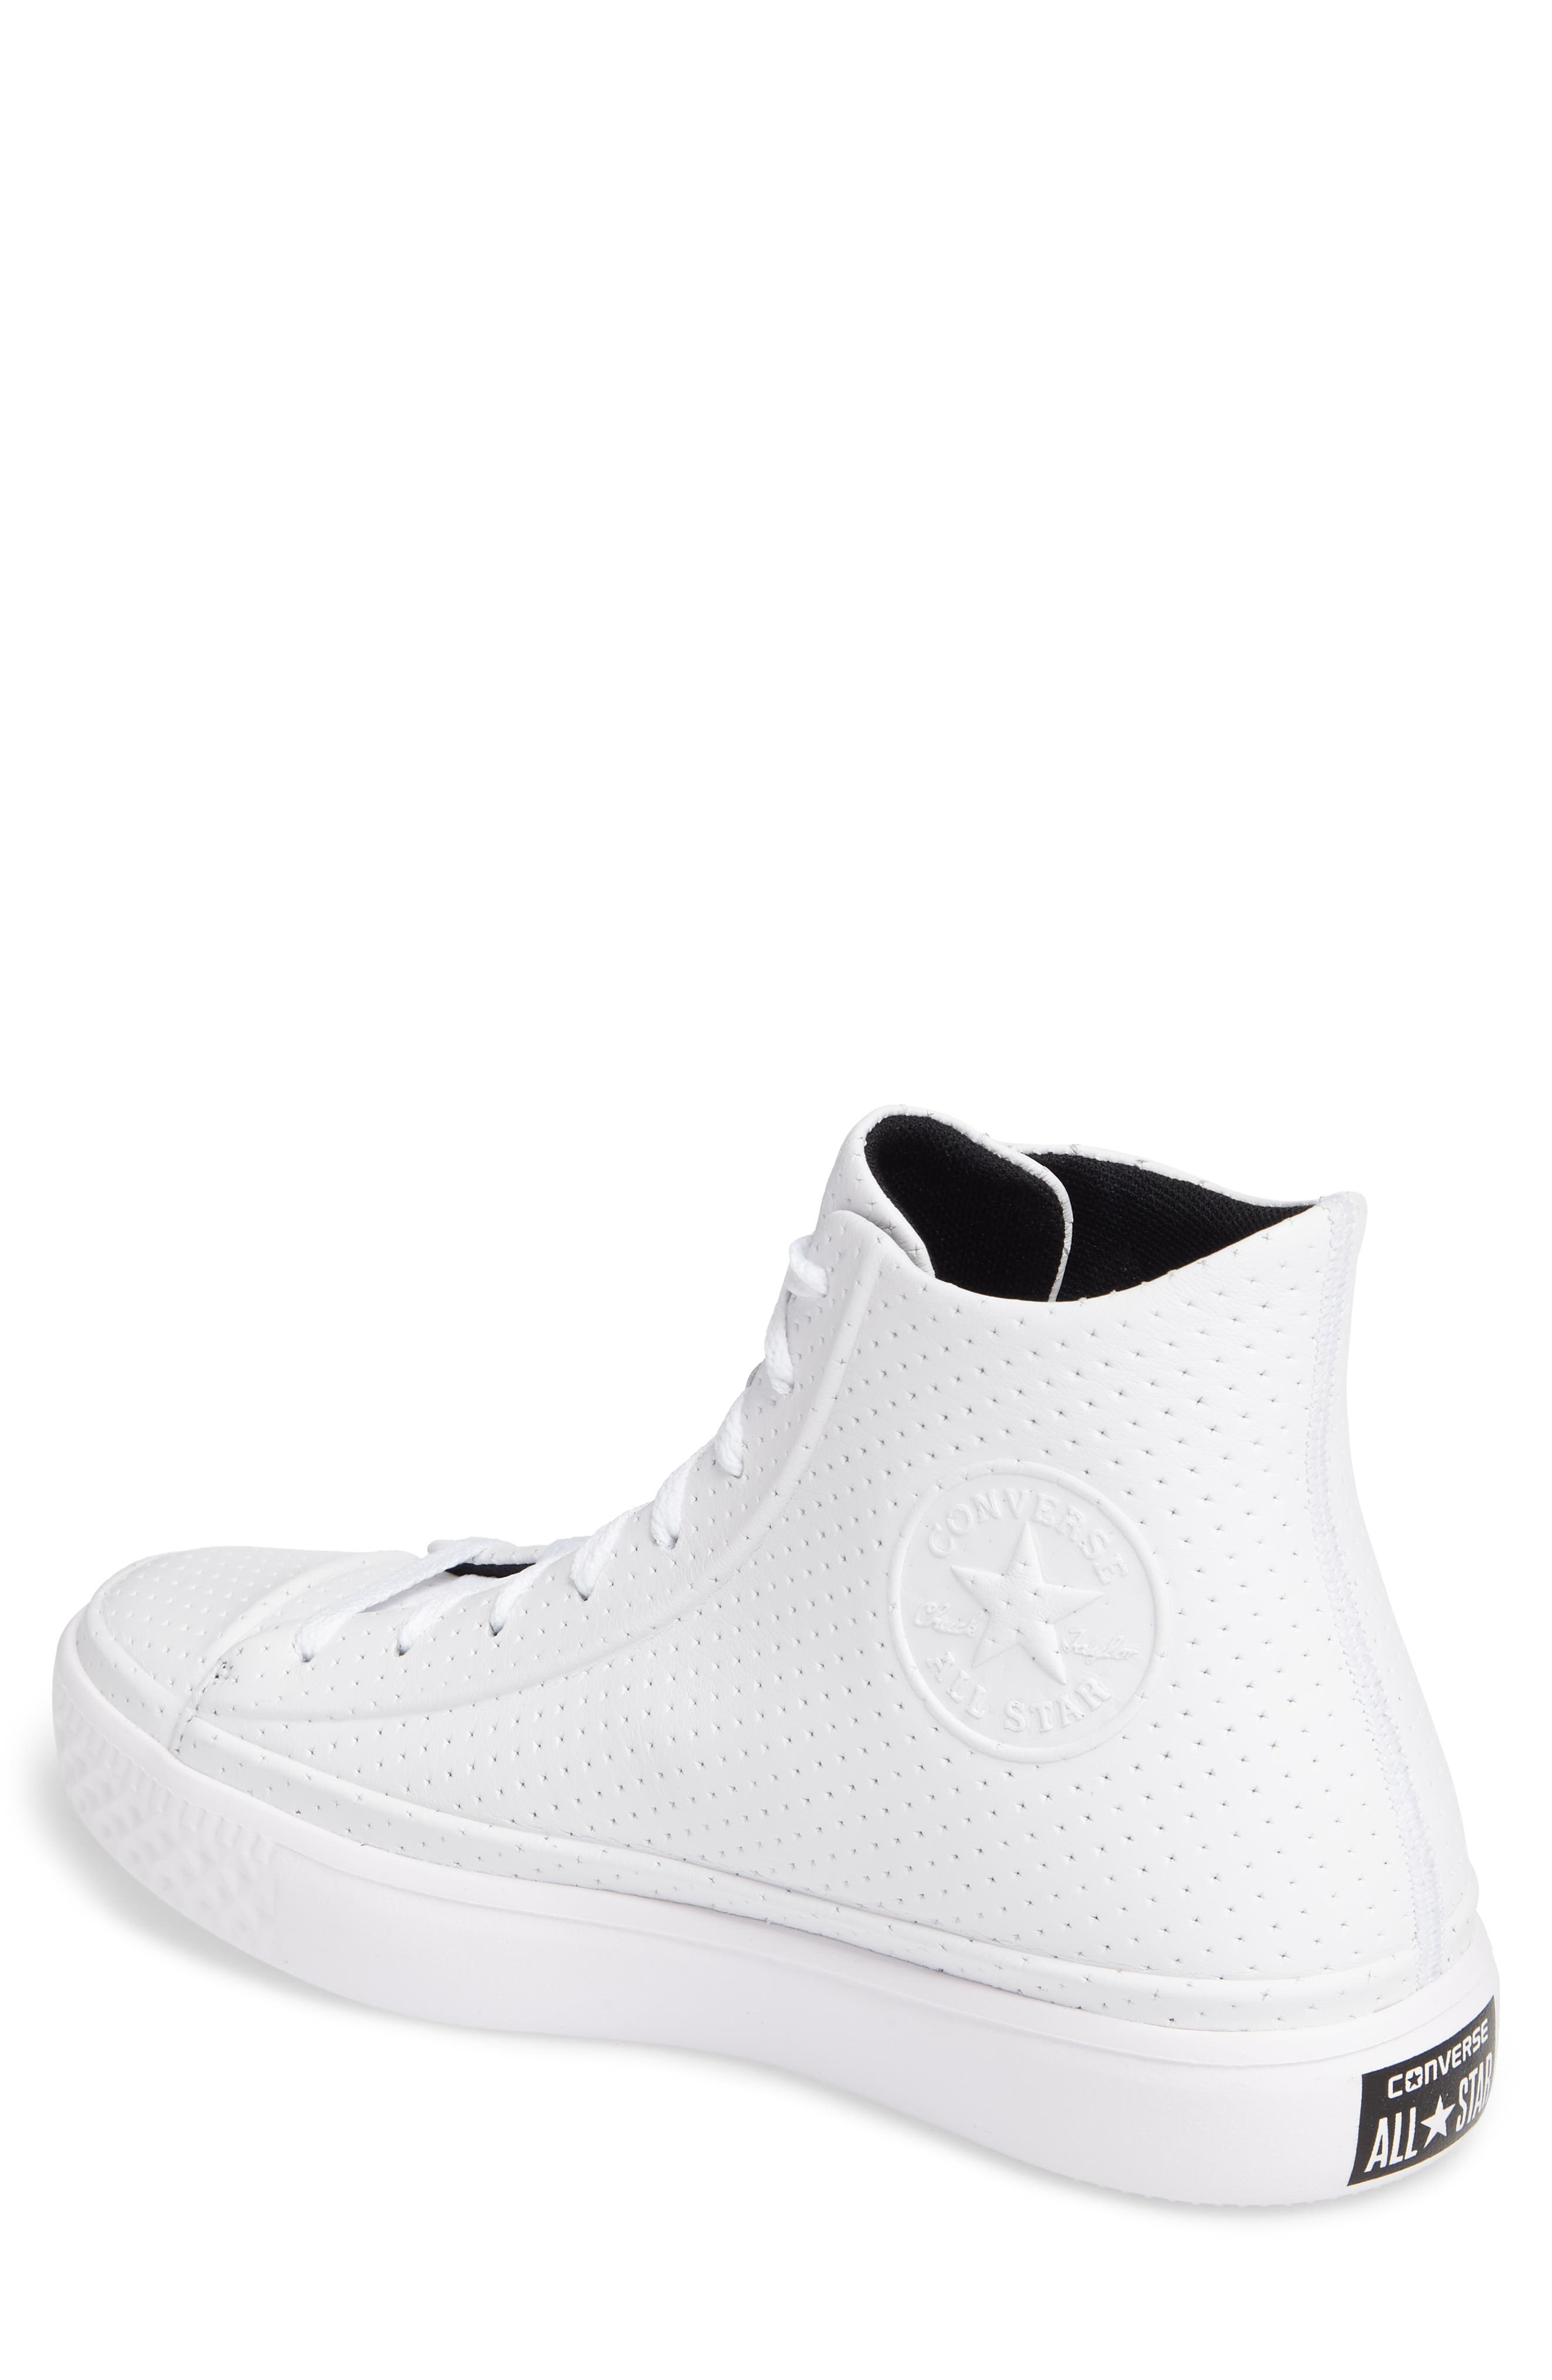 Chuck Taylor<sup>®</sup> All-Star<sup>®</sup> Leather Sneaker,                             Alternate thumbnail 2, color,                             100